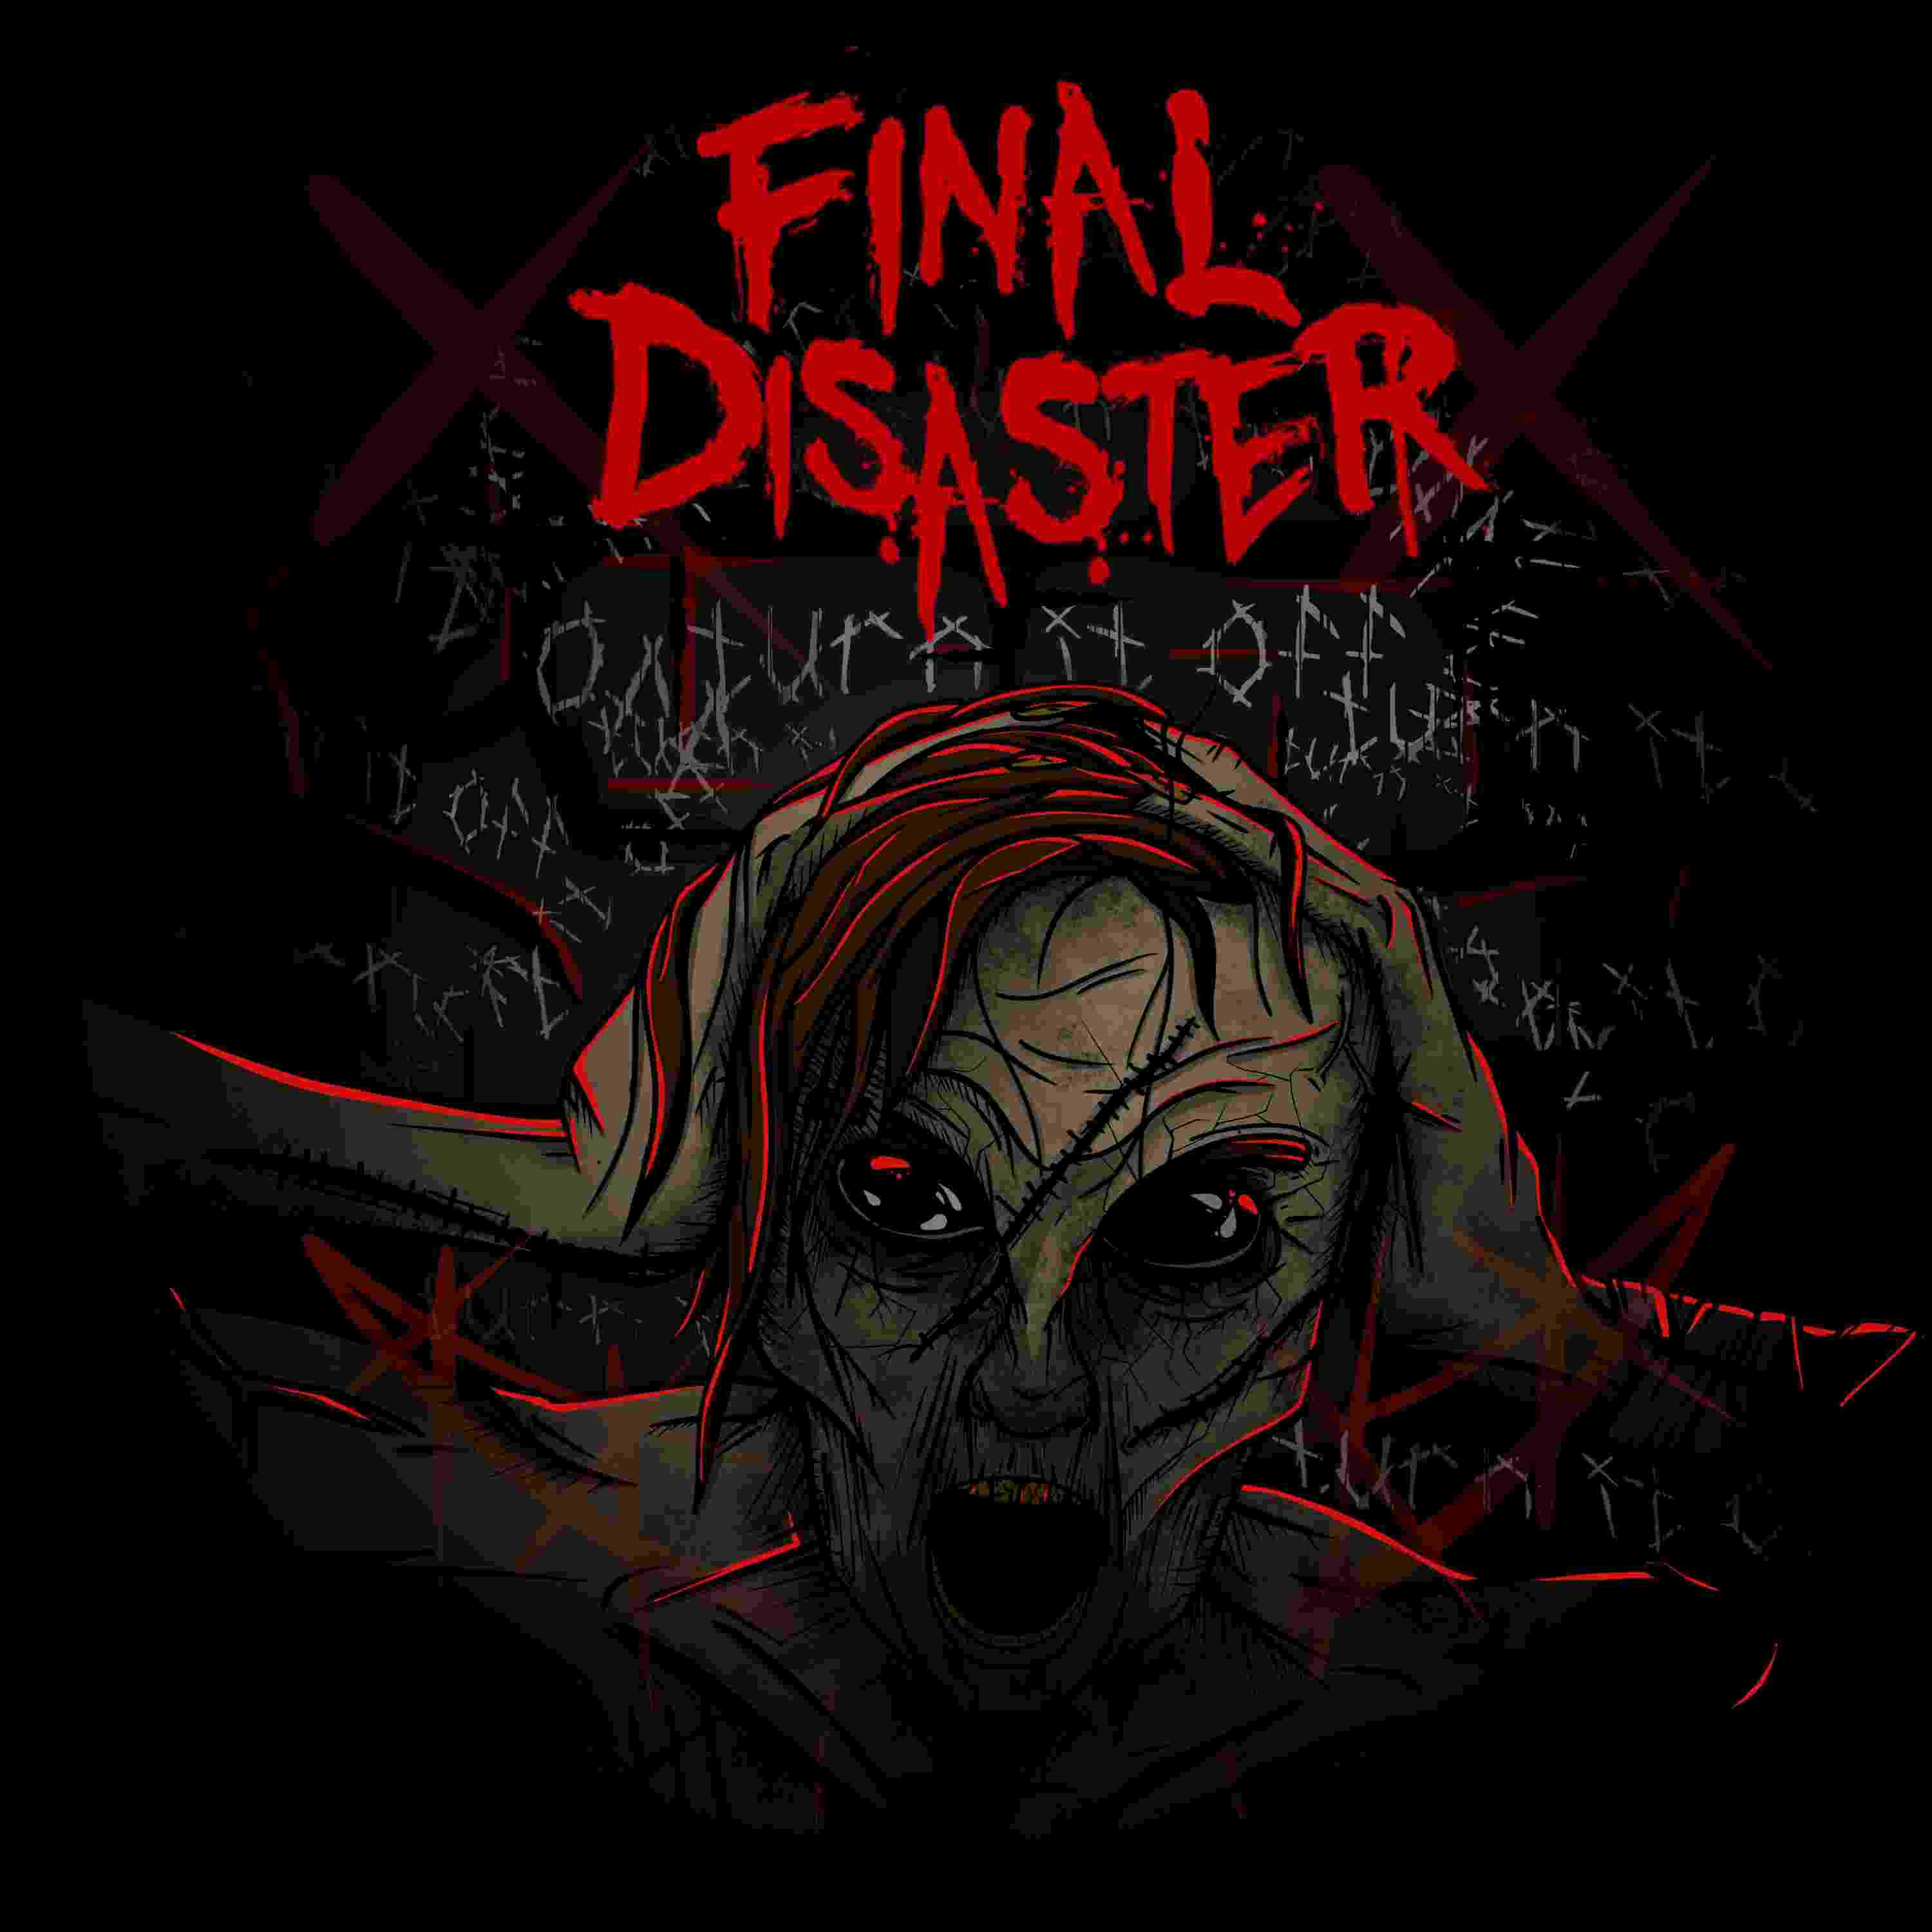 Final Disaster - Turn It Off